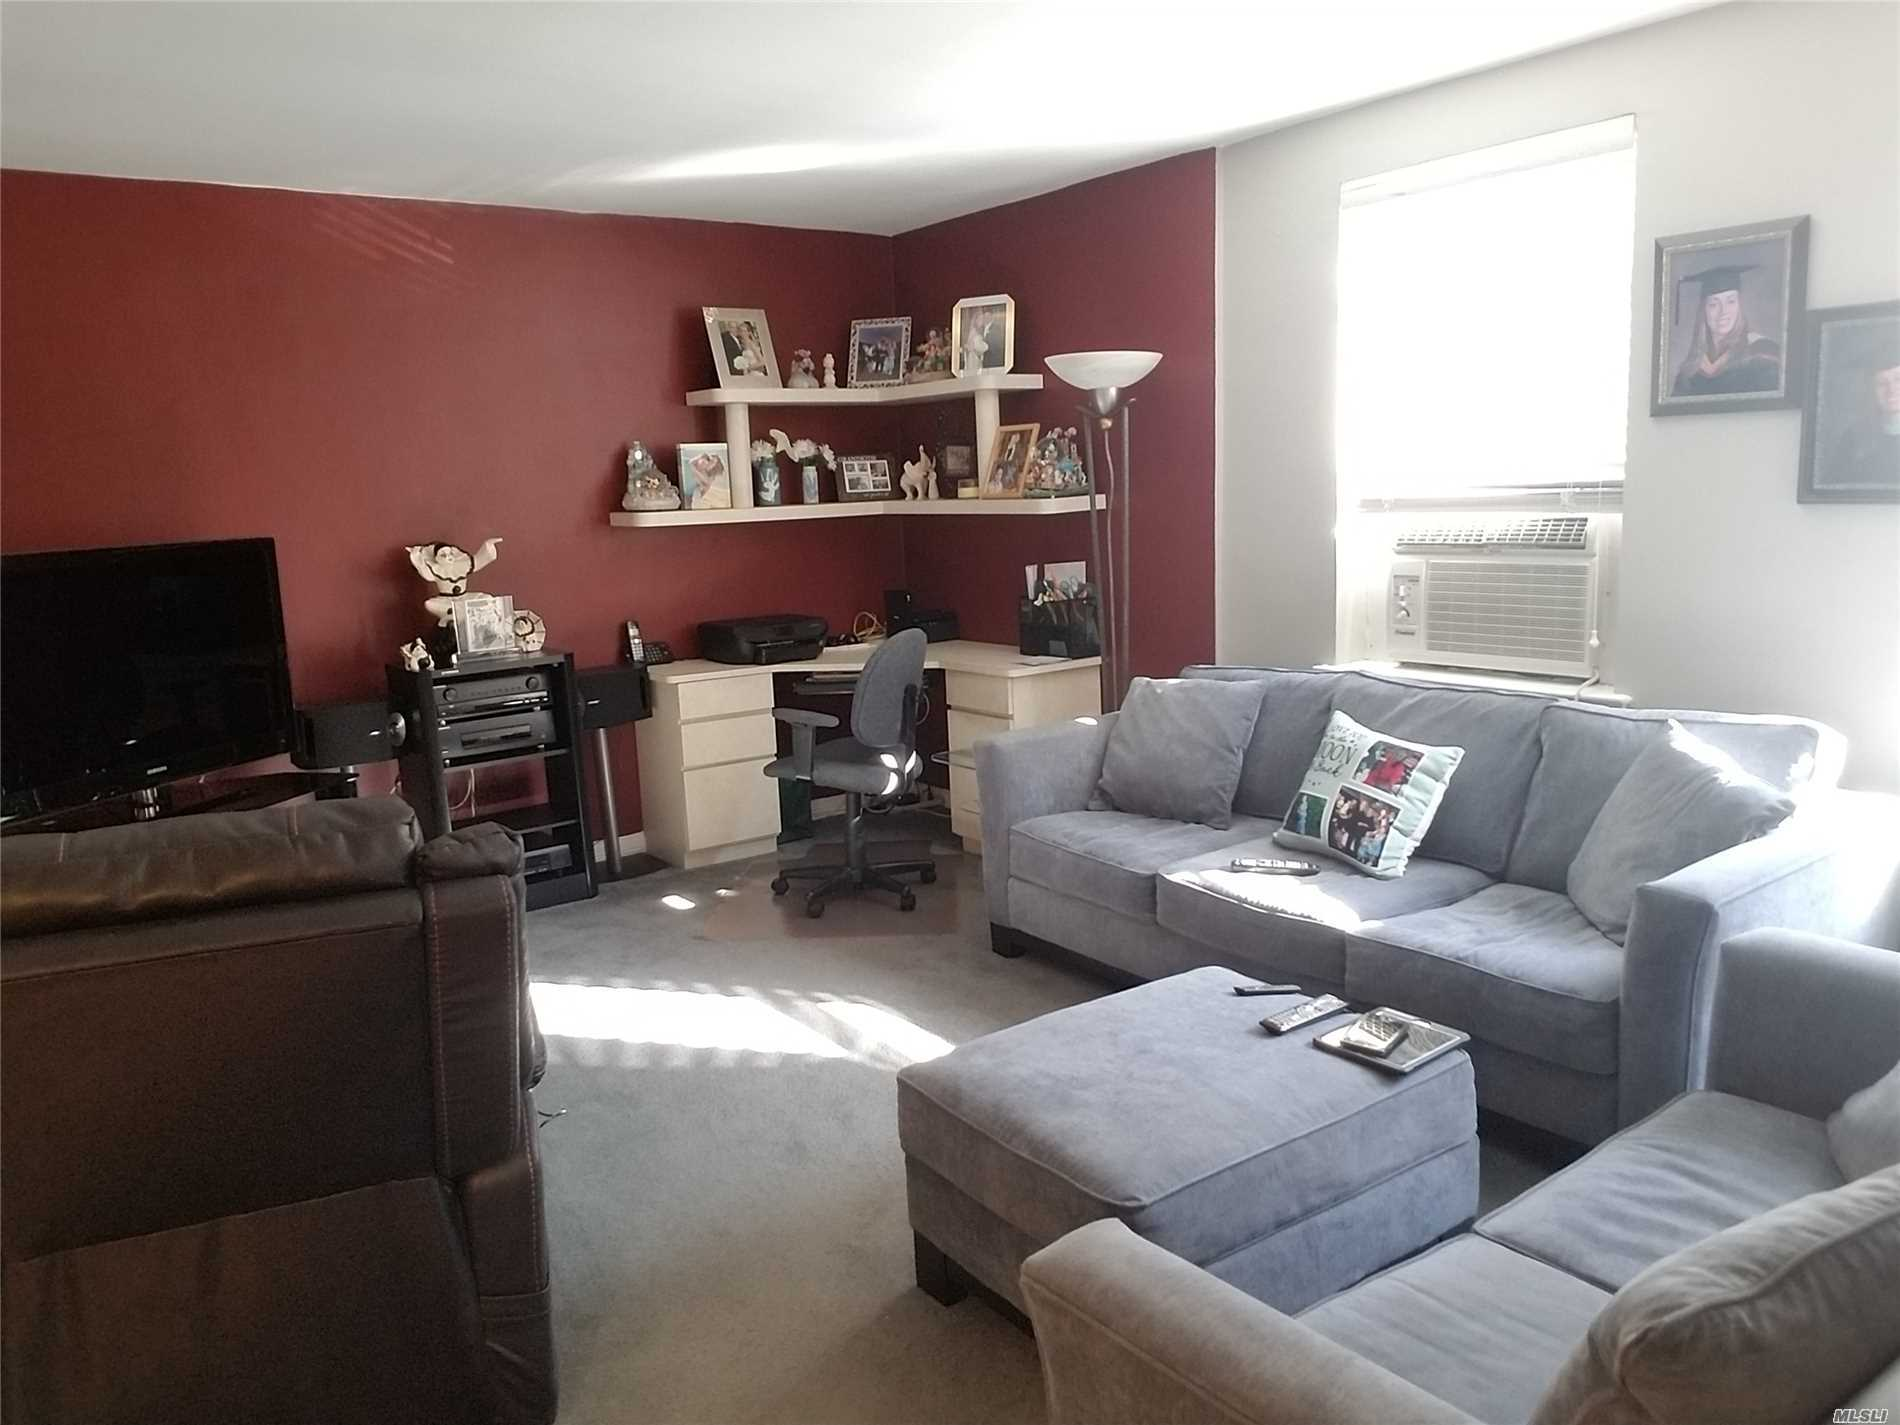 Bright & Spacious 2 Bedroom Unit On The Top Floor! Large Living Room And Large Master Bedroom. New Kitchen Appliances And Renovated Bathroom! Close To Lirr, Busses, Park Highways And Shops! There's A Waitlist For A Spot In Garage ($50/Mo). Income Requirement Is Debt To Income Ratio 28% Or Less. No Flip Tax! School District 26. Must See!